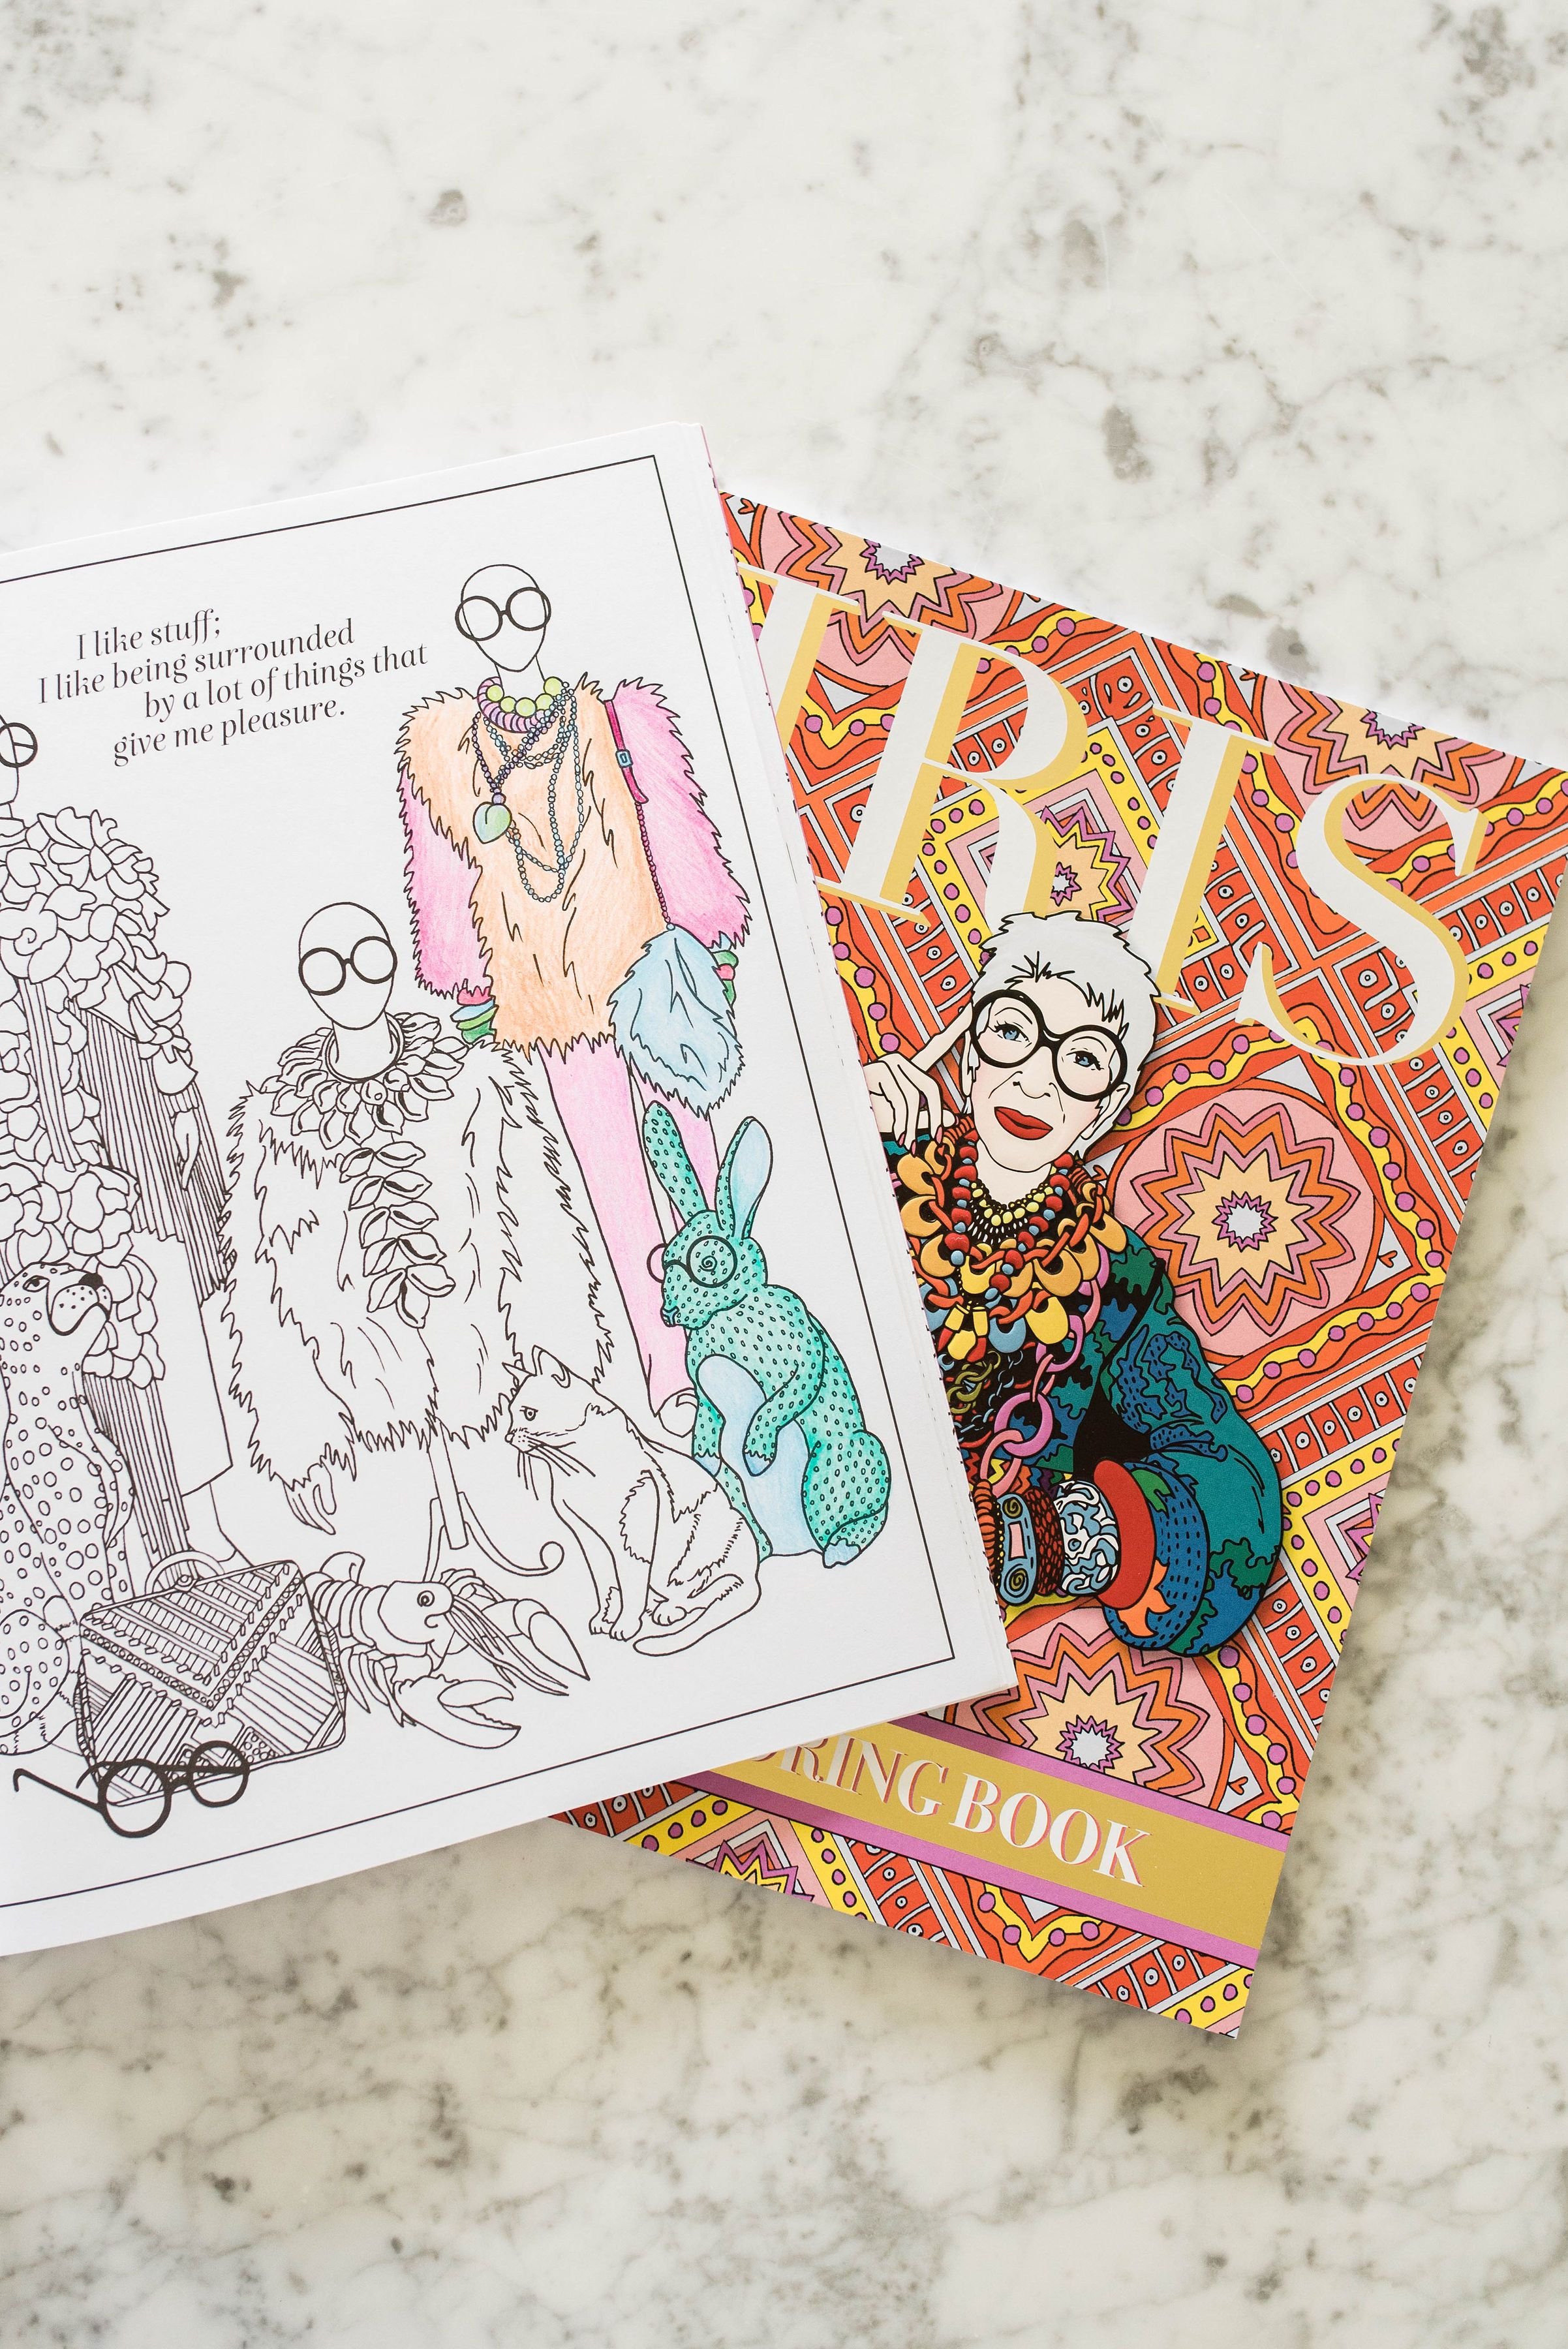 New Iris Apfel Coloring Book Will Support Student Scholarships Coloring Books Iris Apfel Iris